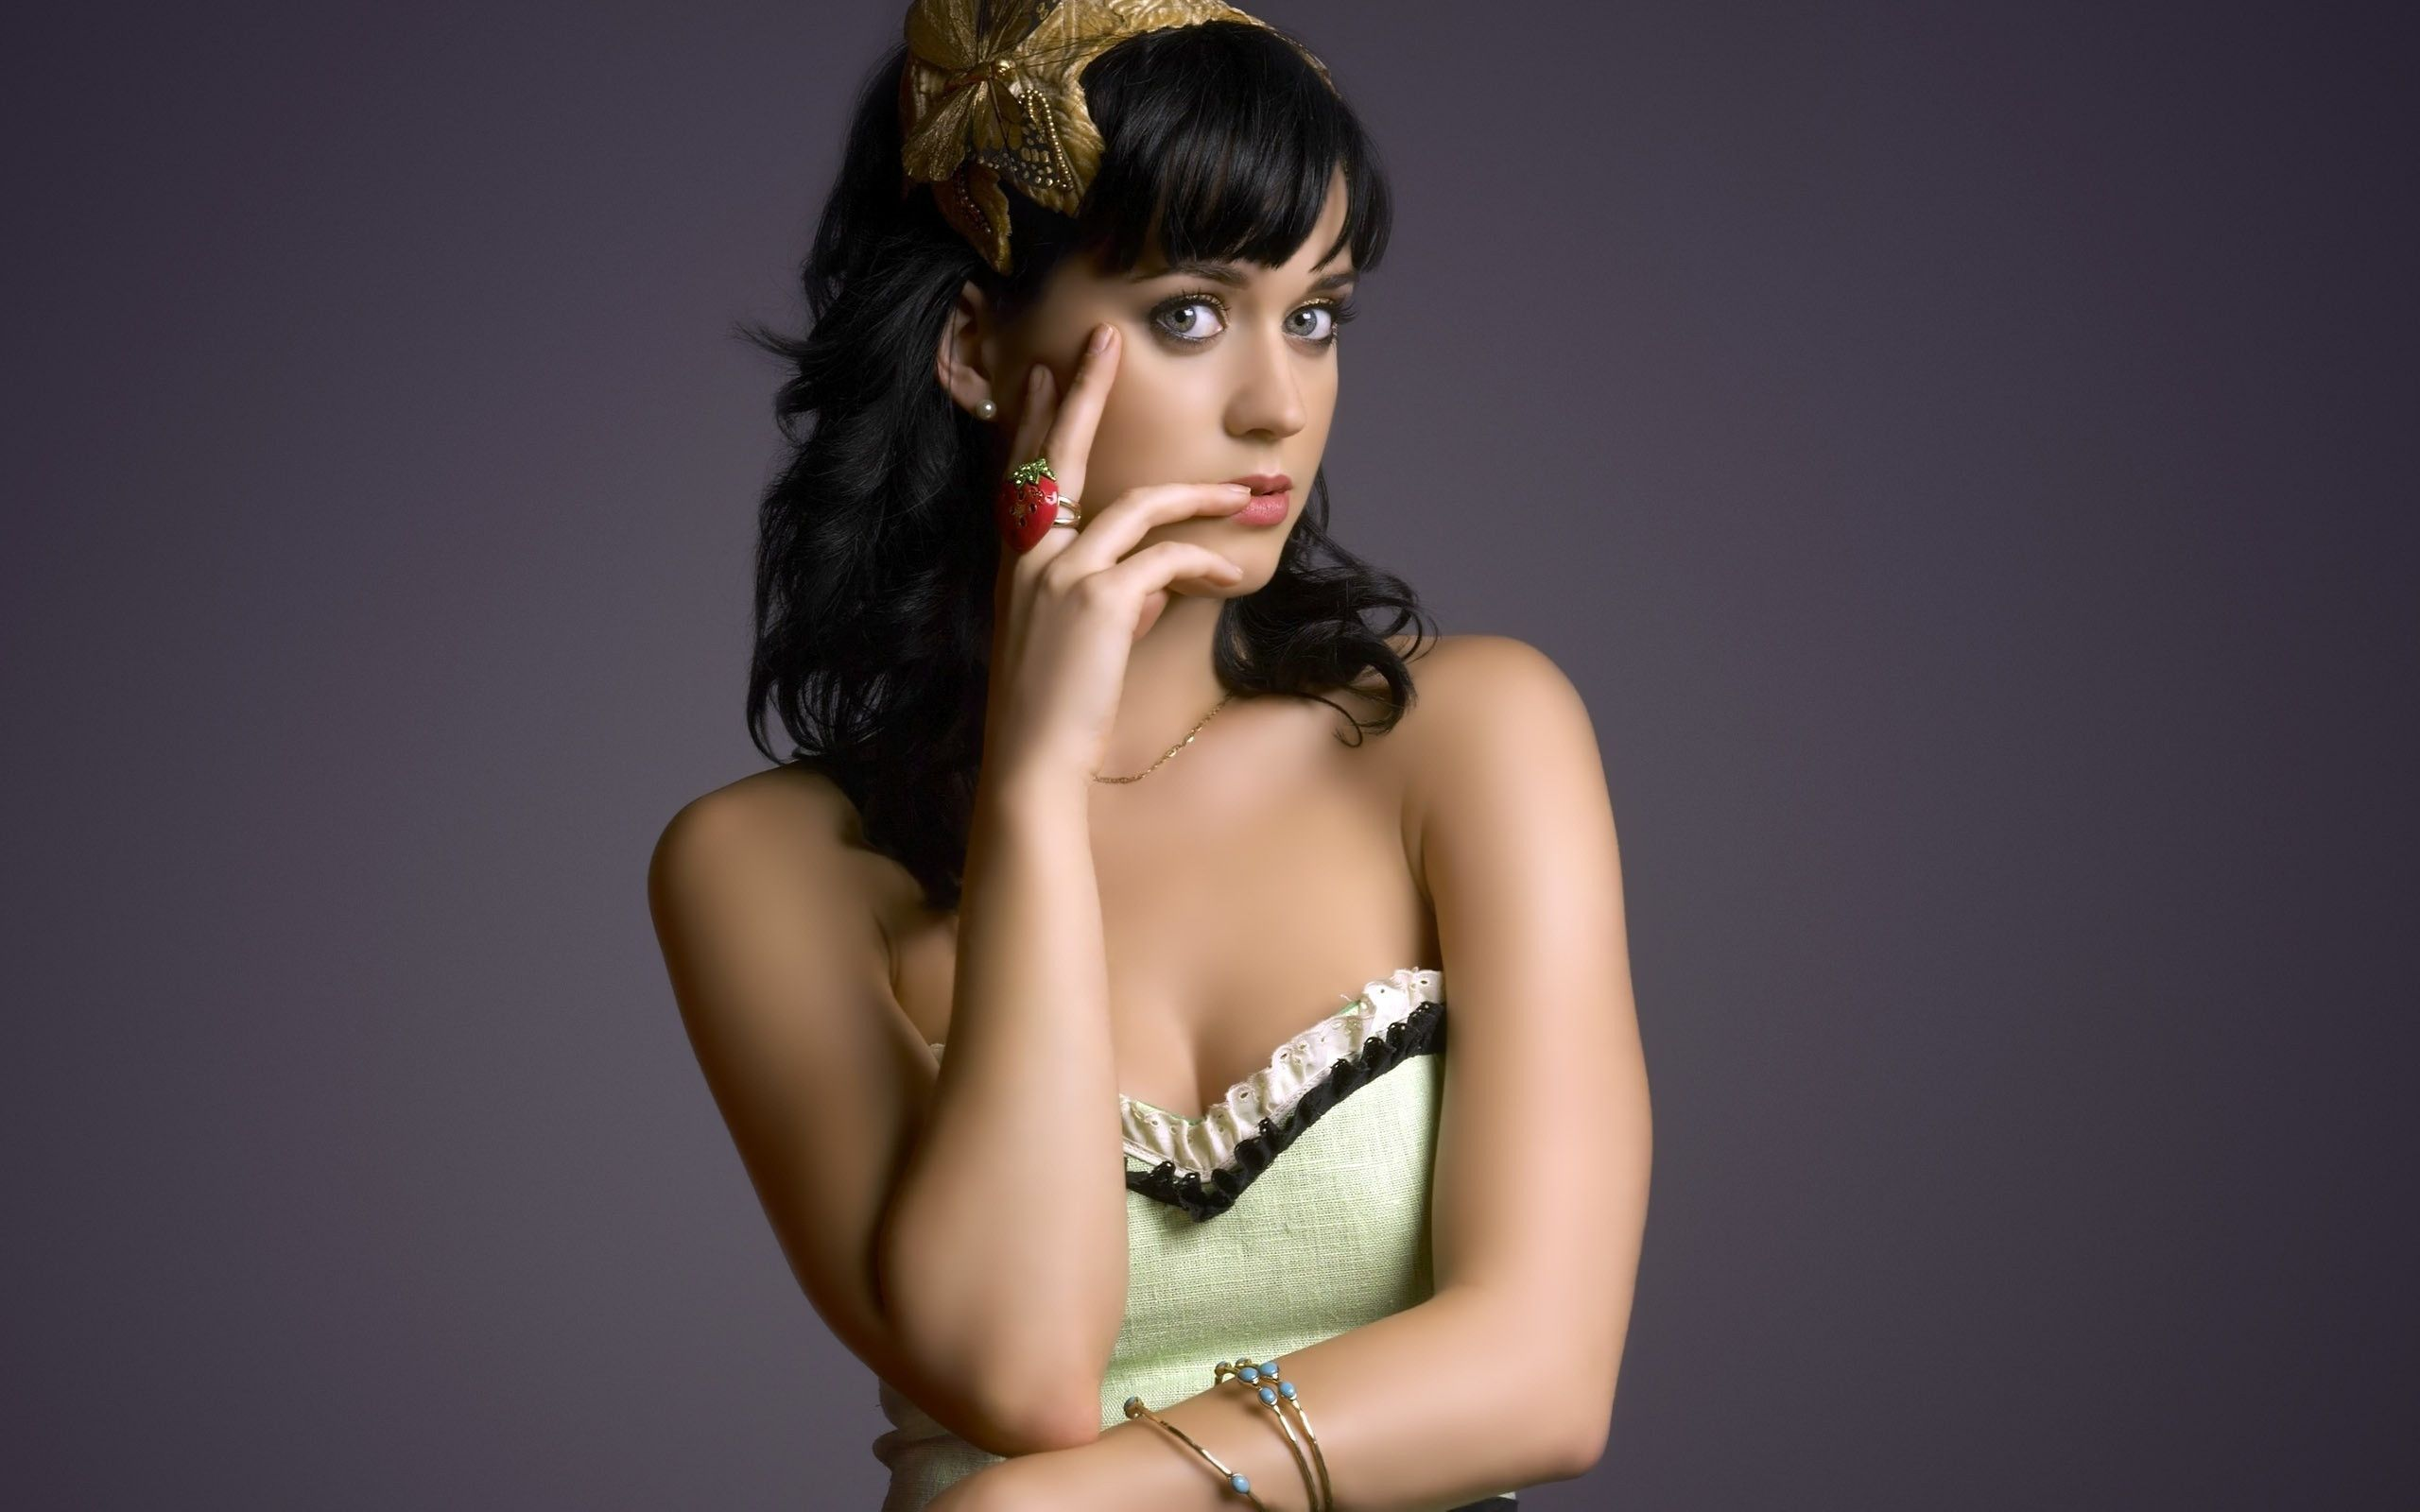 Katy Perry Wallpapers Top Free Katy Perry Backgrounds